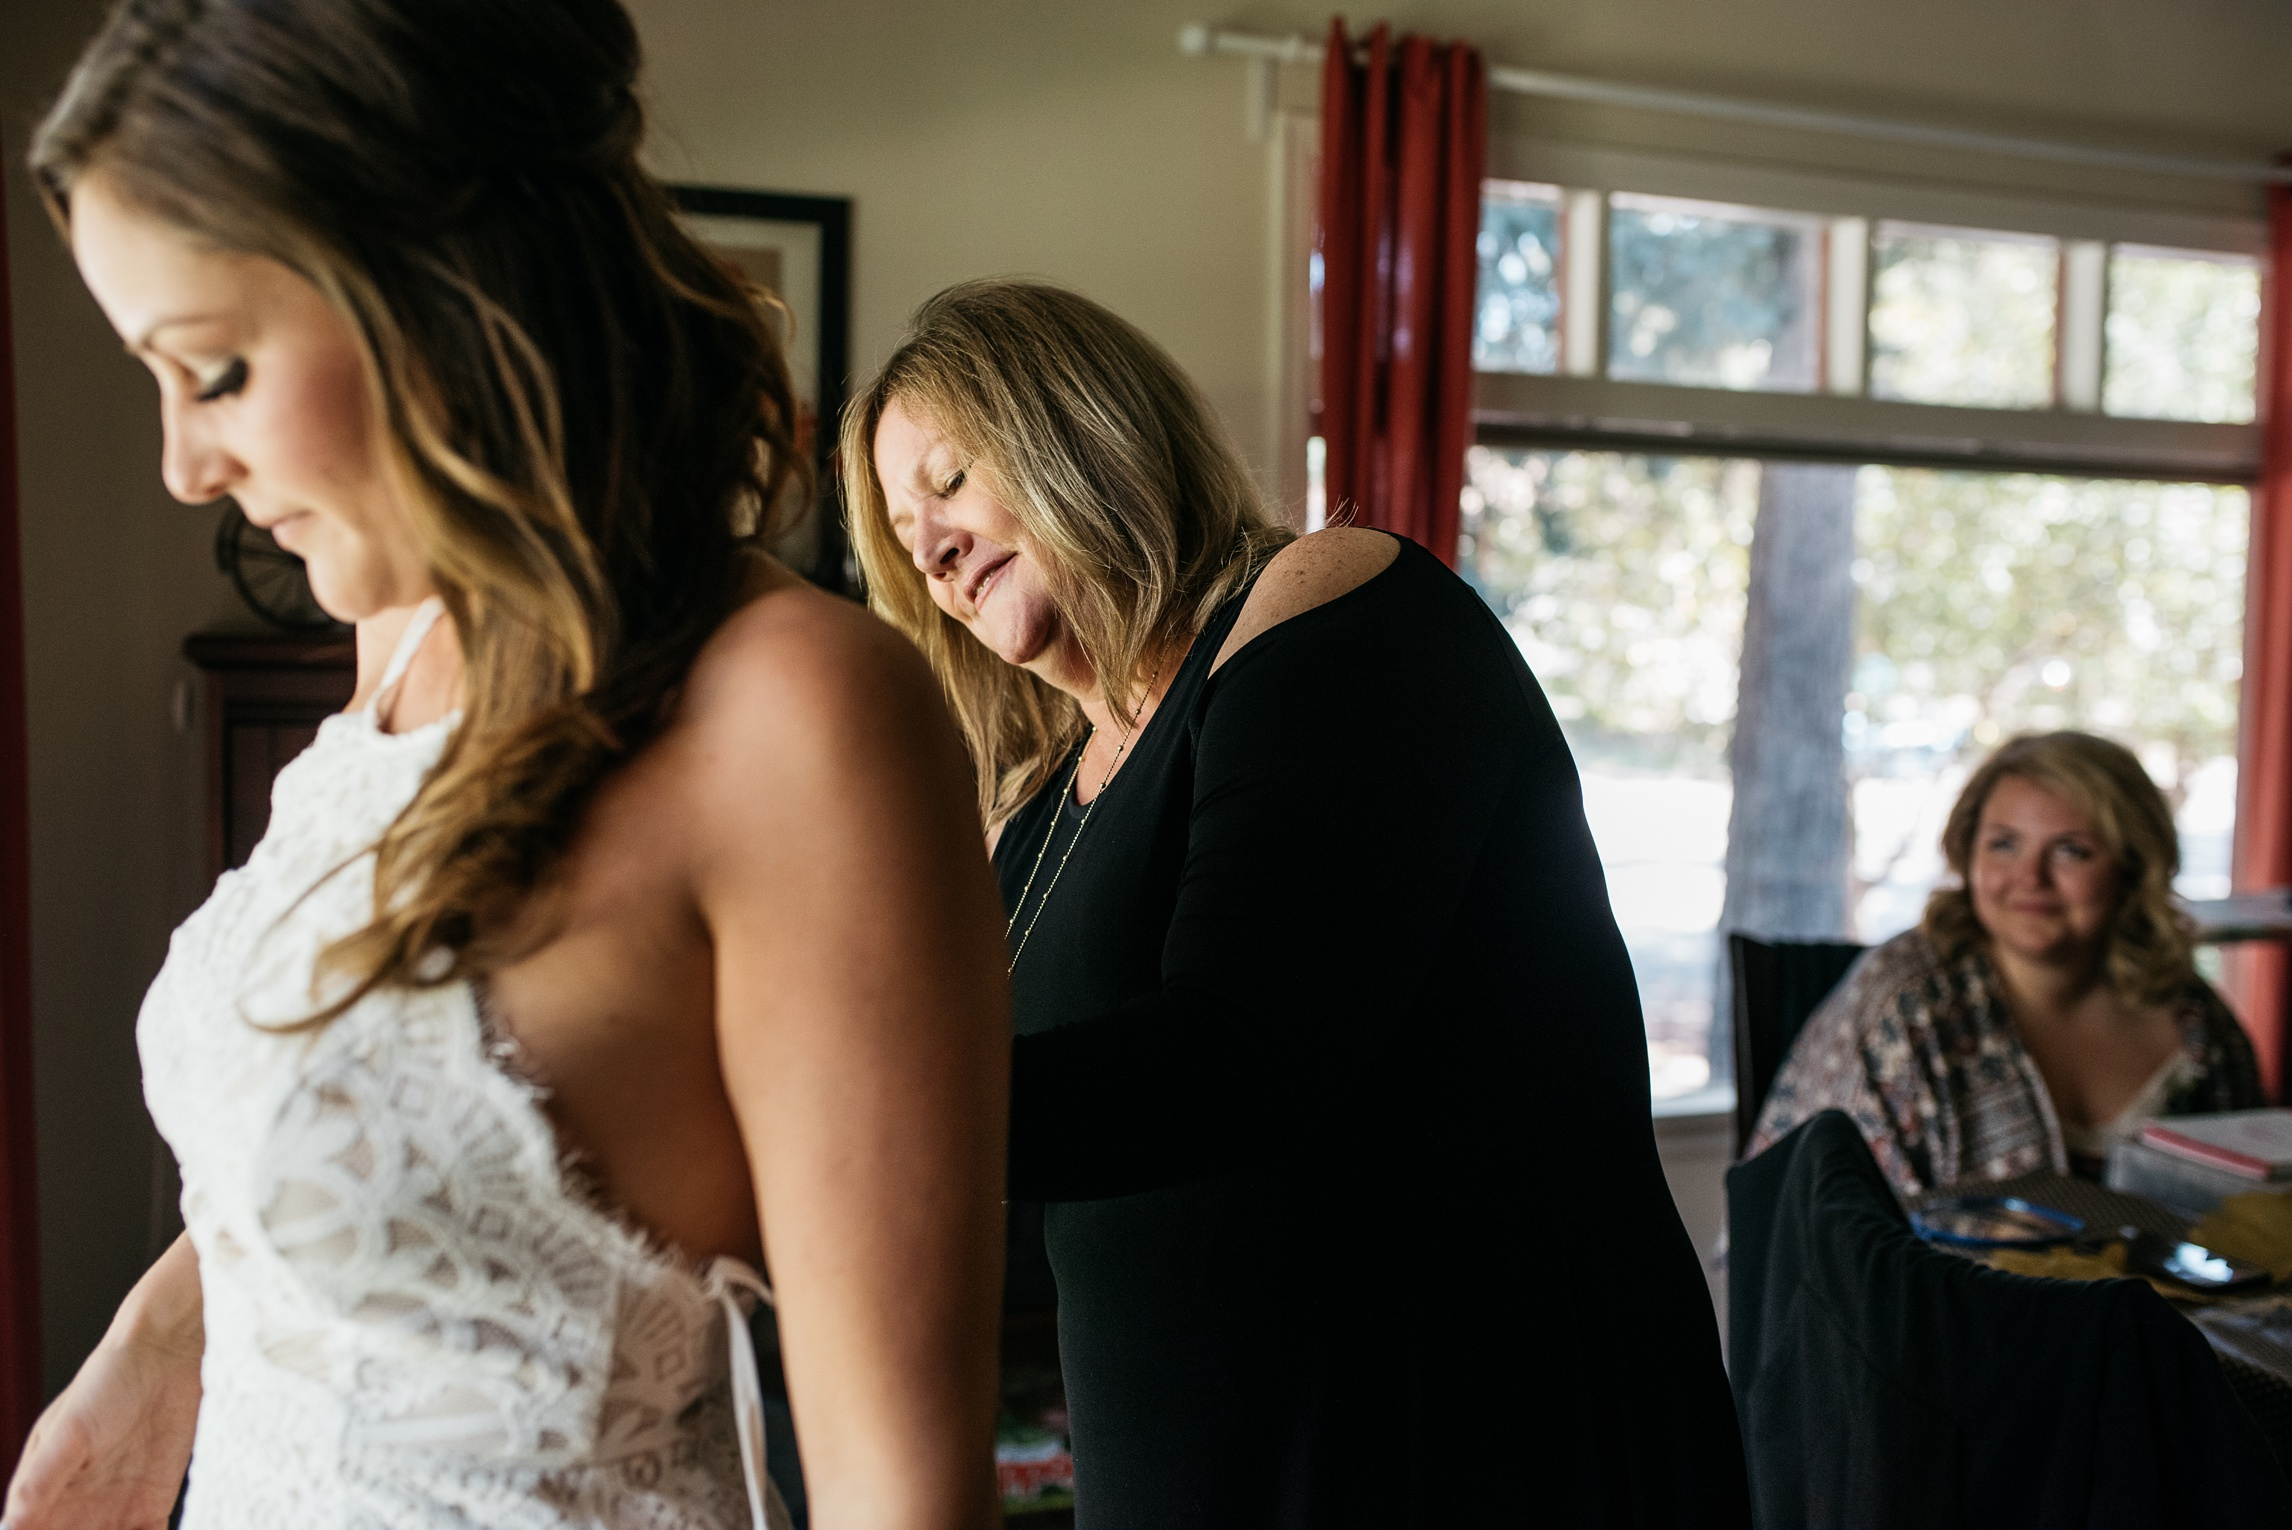 A bride puts on her wedding dress with help from her mother. Wedding photography by Sonja Salzburg of Sonja K Photography.